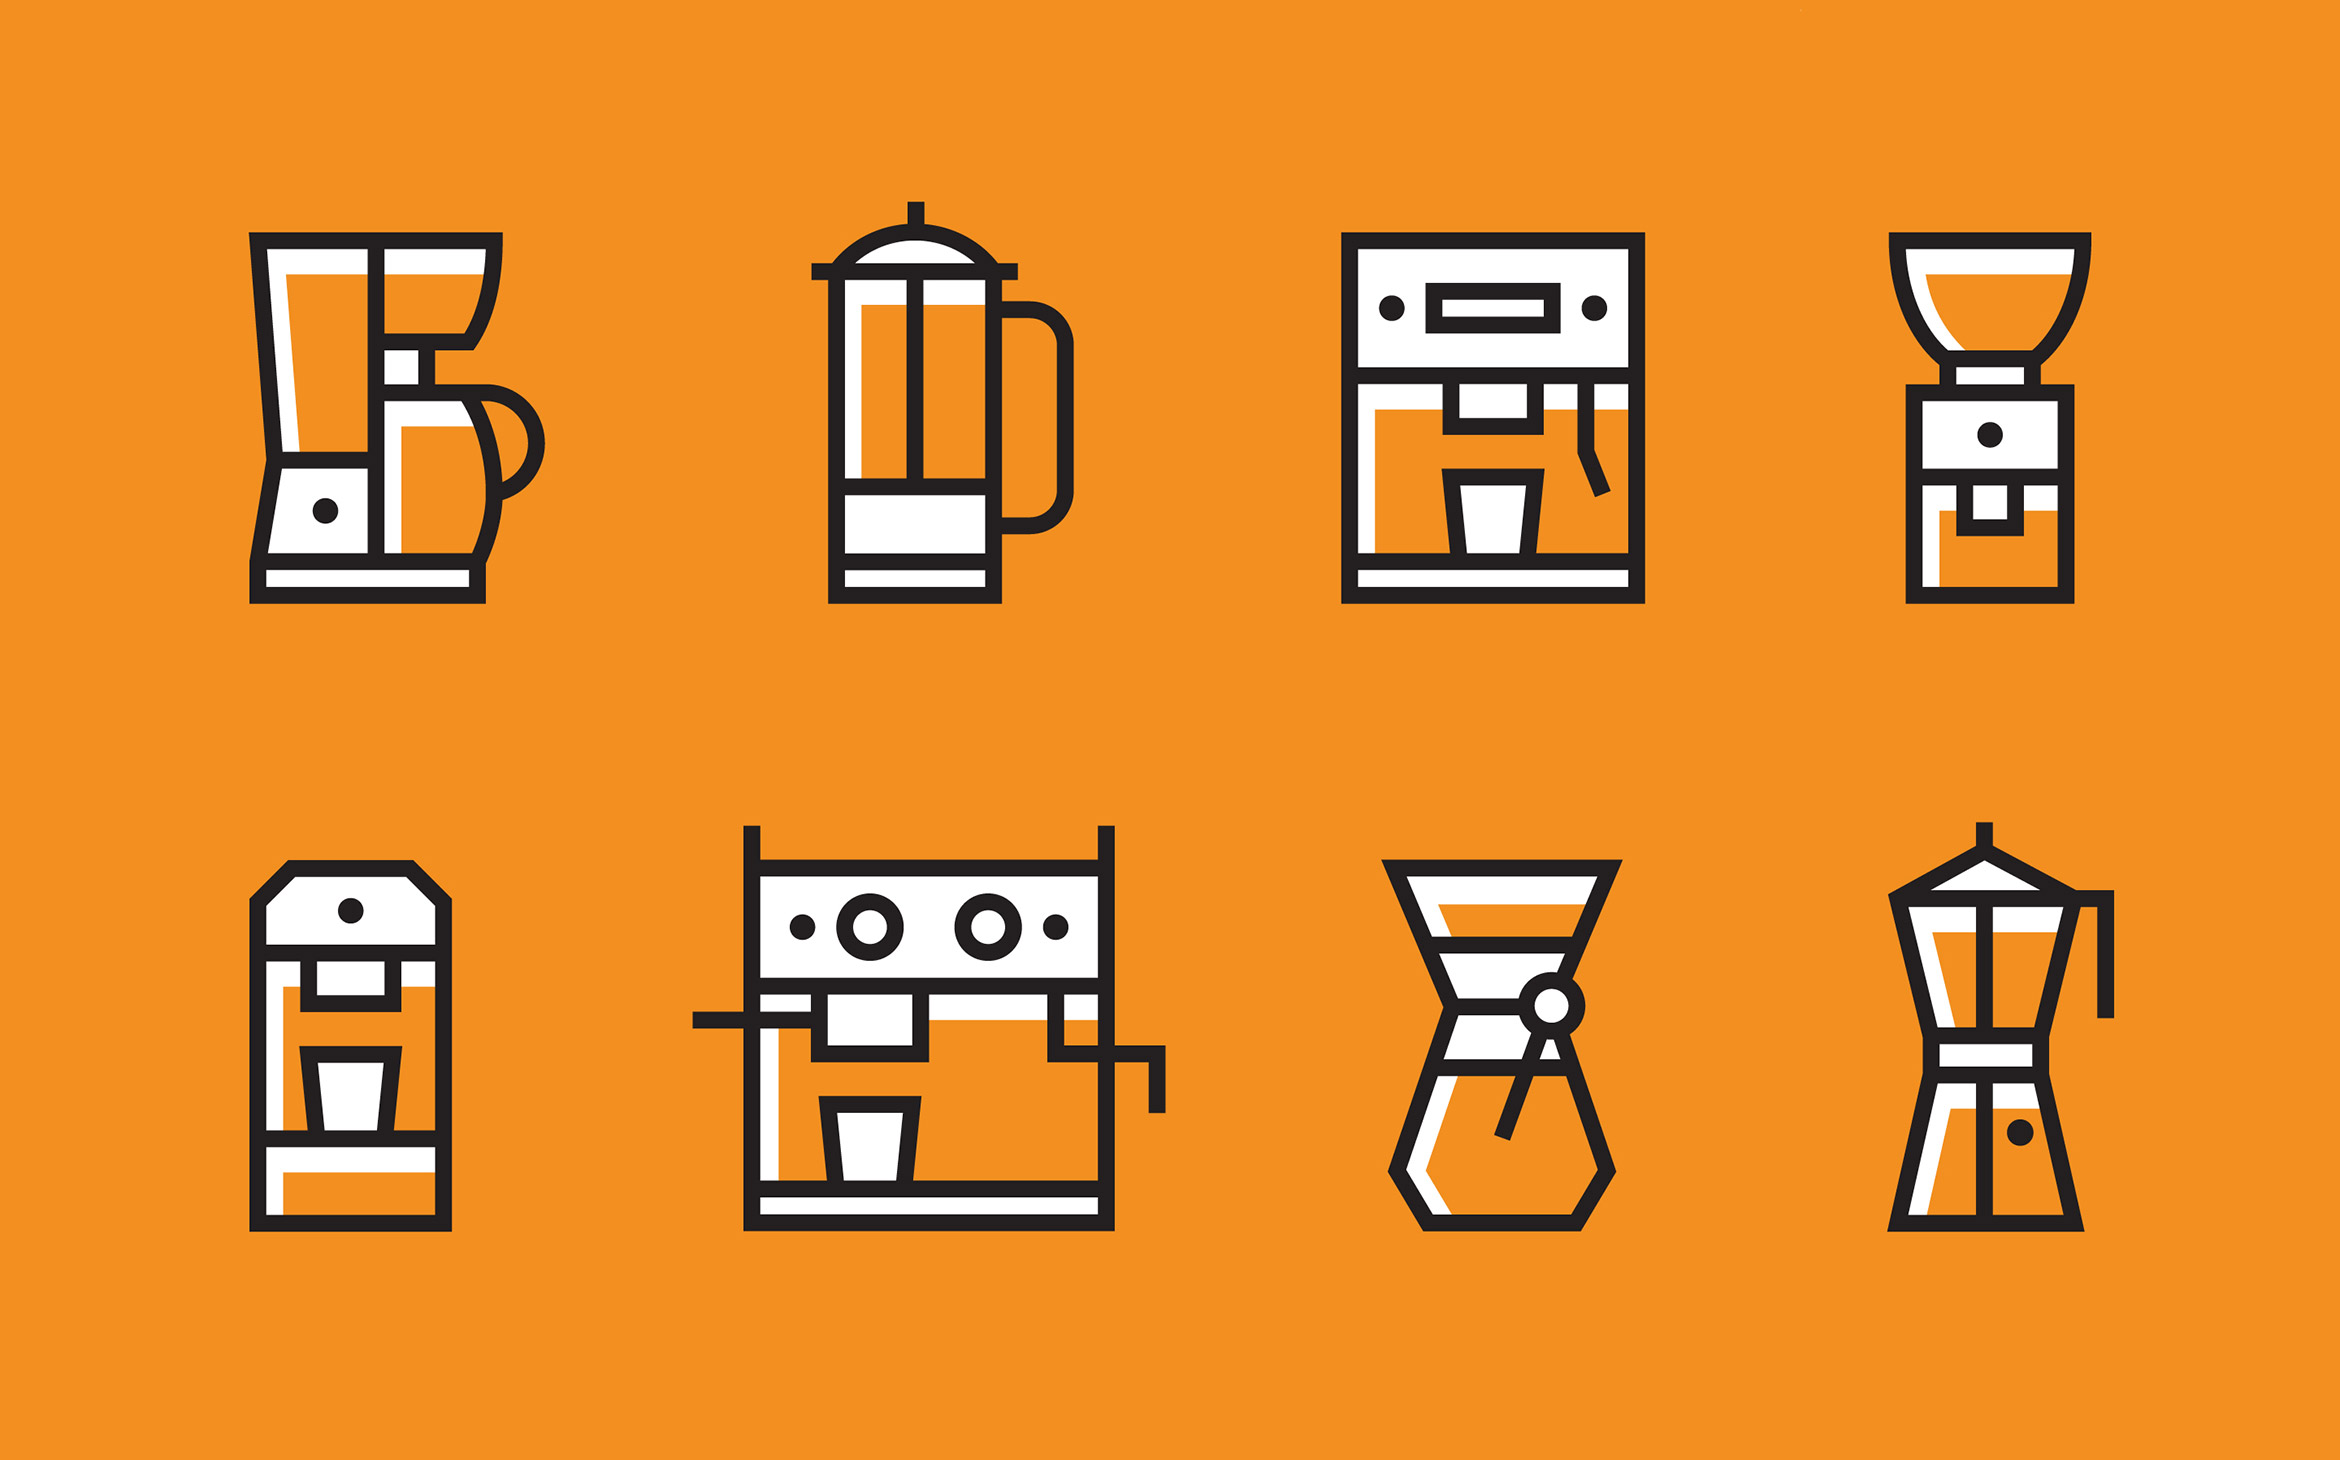 Coffee-Machines-Icons-By-Jan-Baca